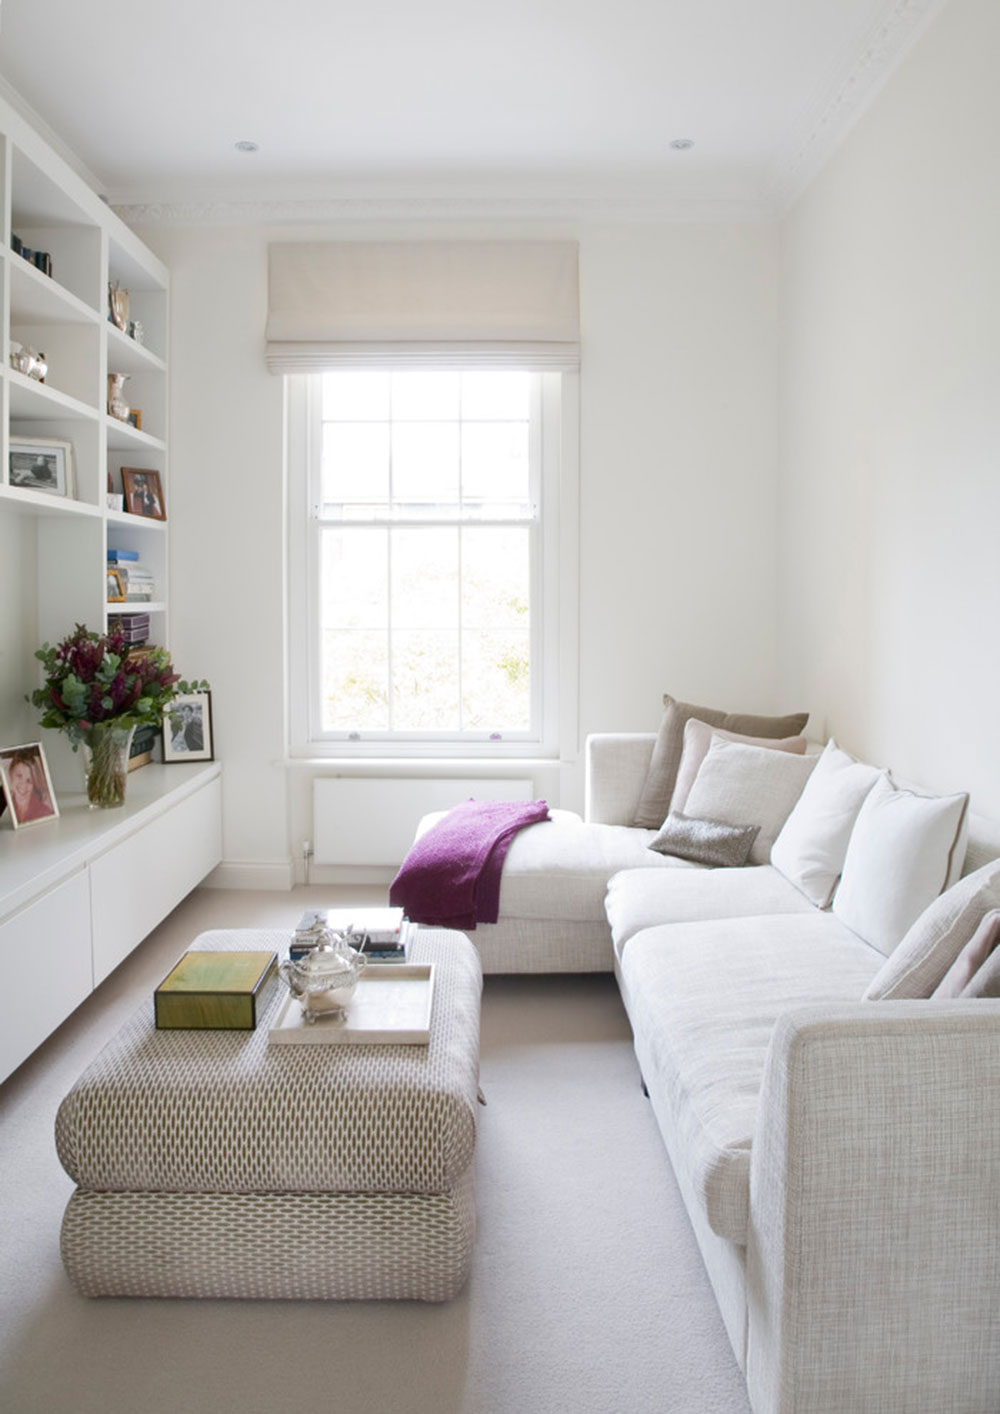 Organizing Living Room Ideas For Organizing Your Home Interior